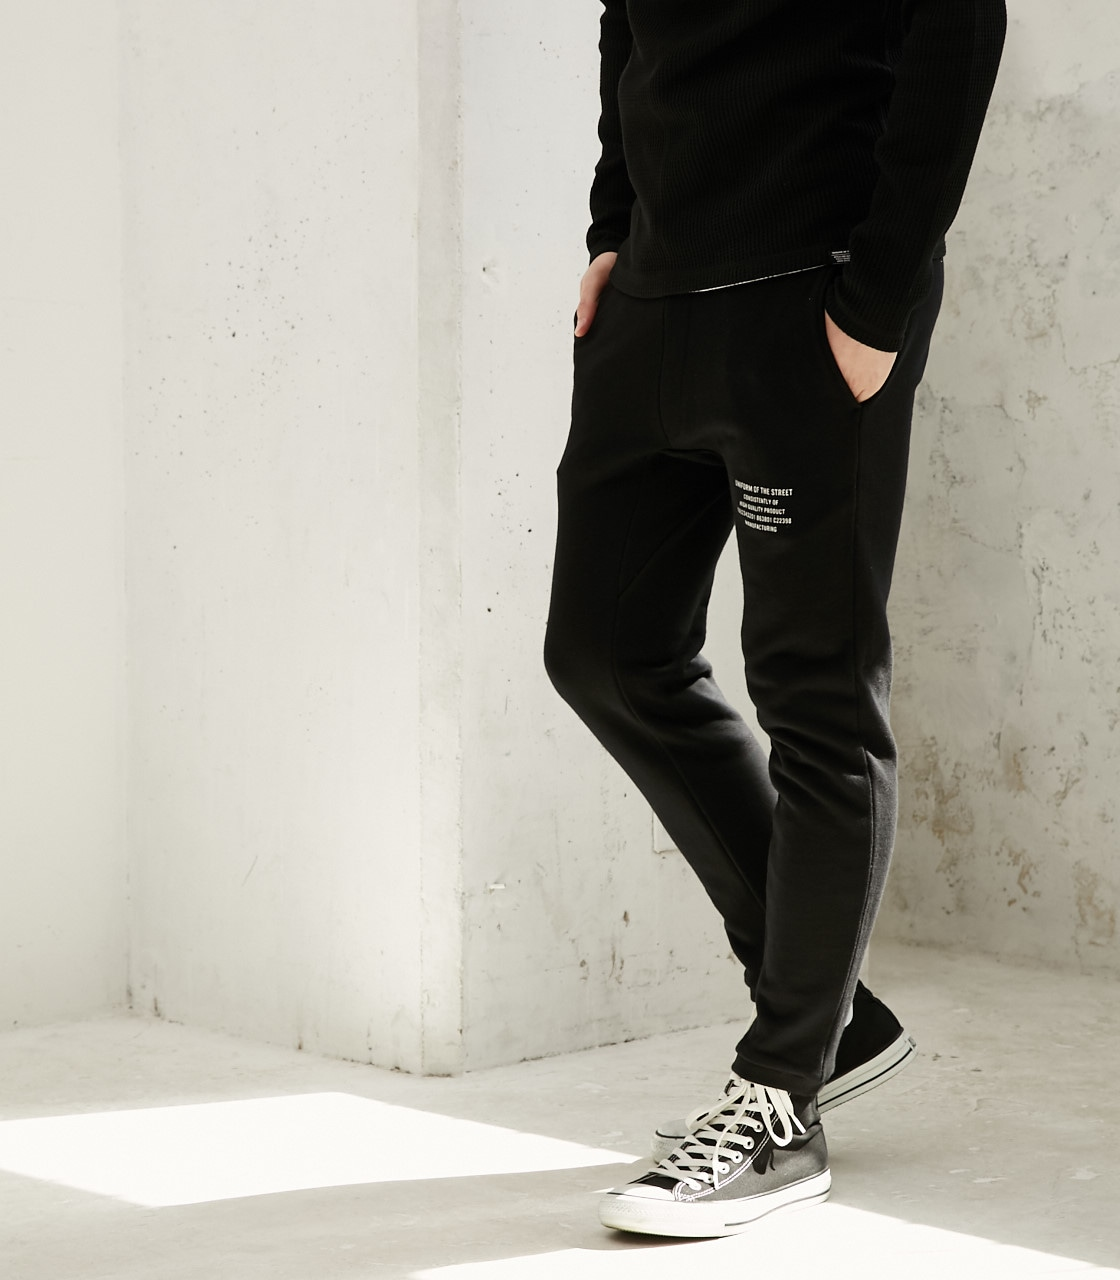 【AZUL BY MOUSSY】UOTS スウェットパンツ 詳細画像 BLK 2